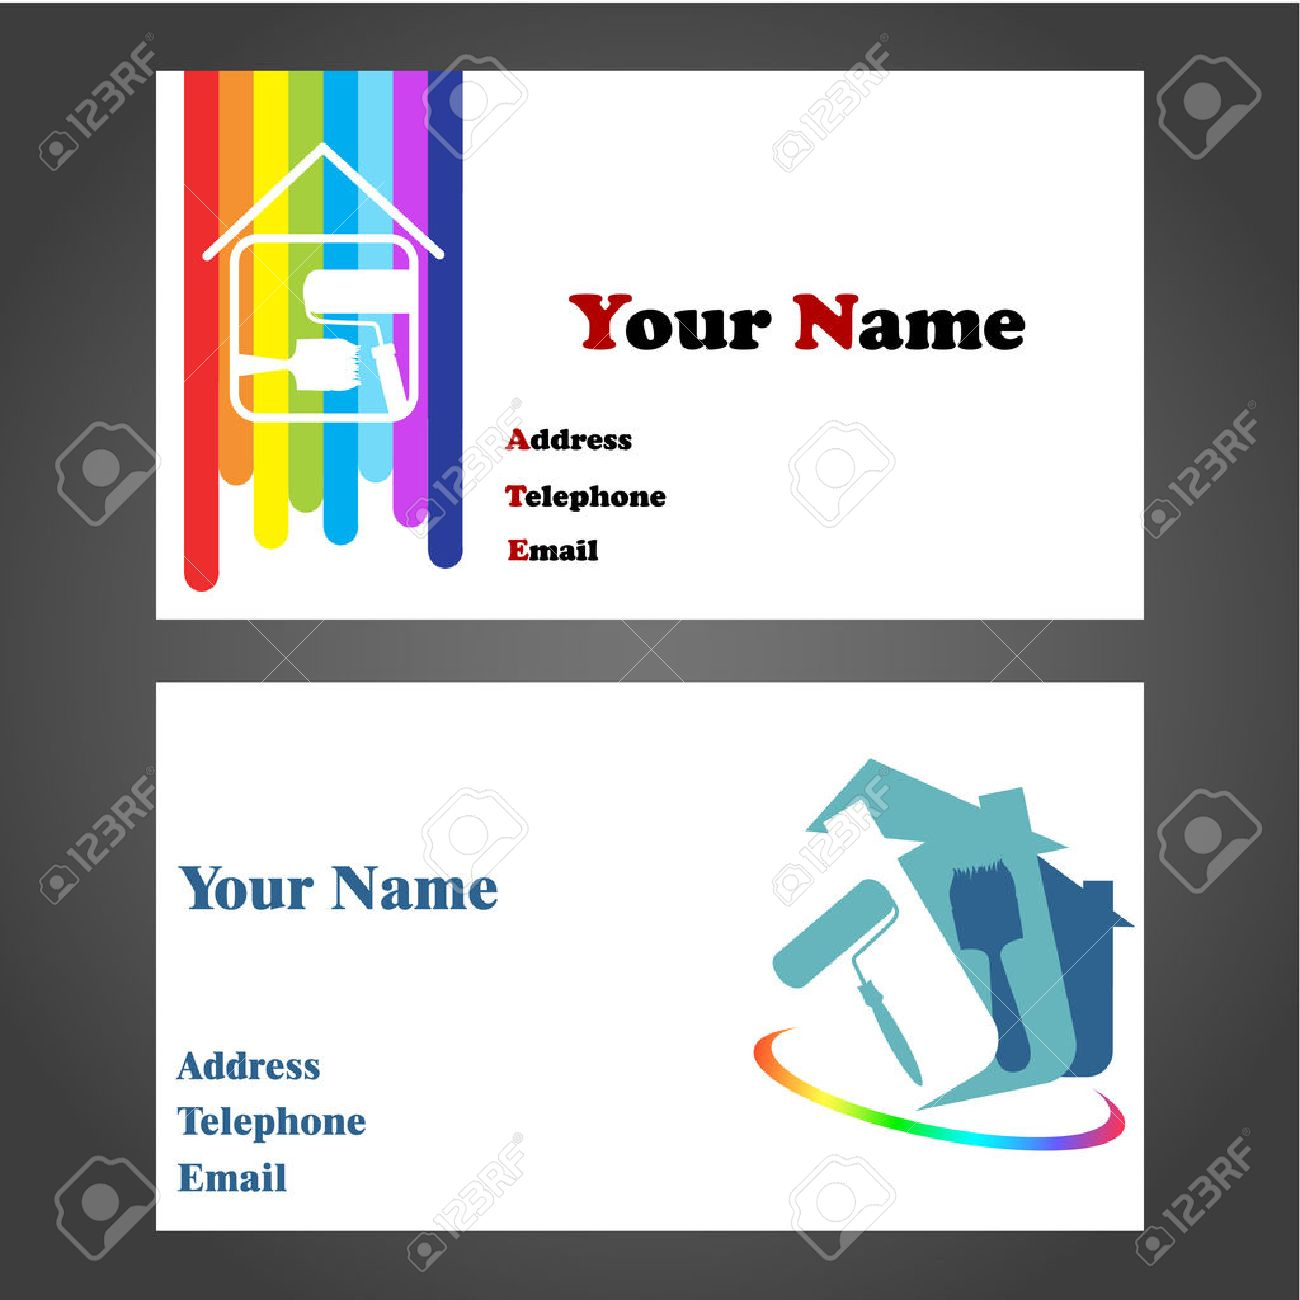 Business Card Designs For Painters And Decorators Royalty Free ...